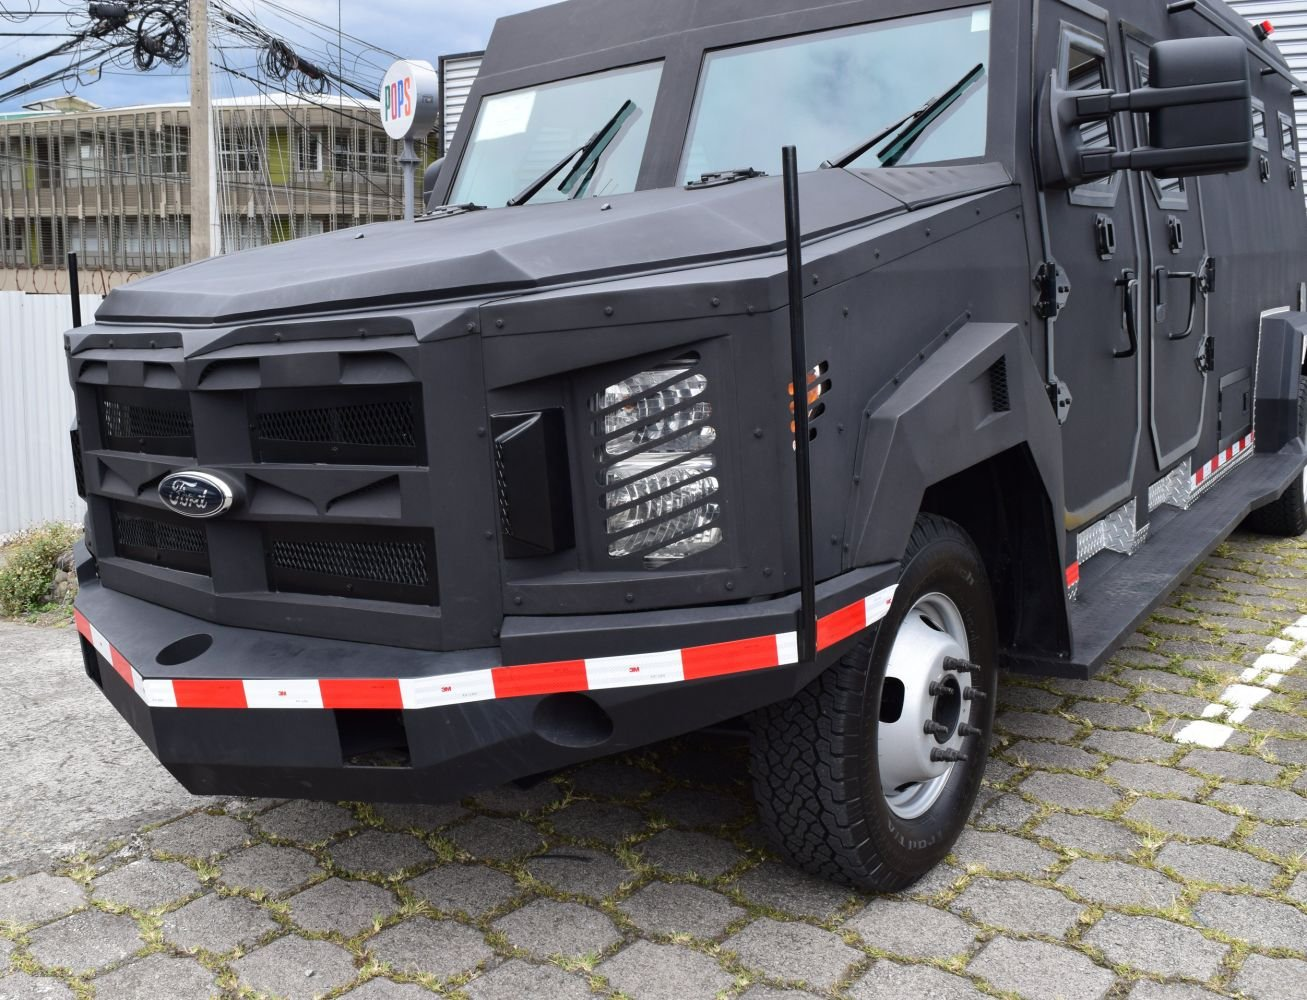 Costa Rican Security Forces Deploy Armored Vehicle to Fight Organized Crime